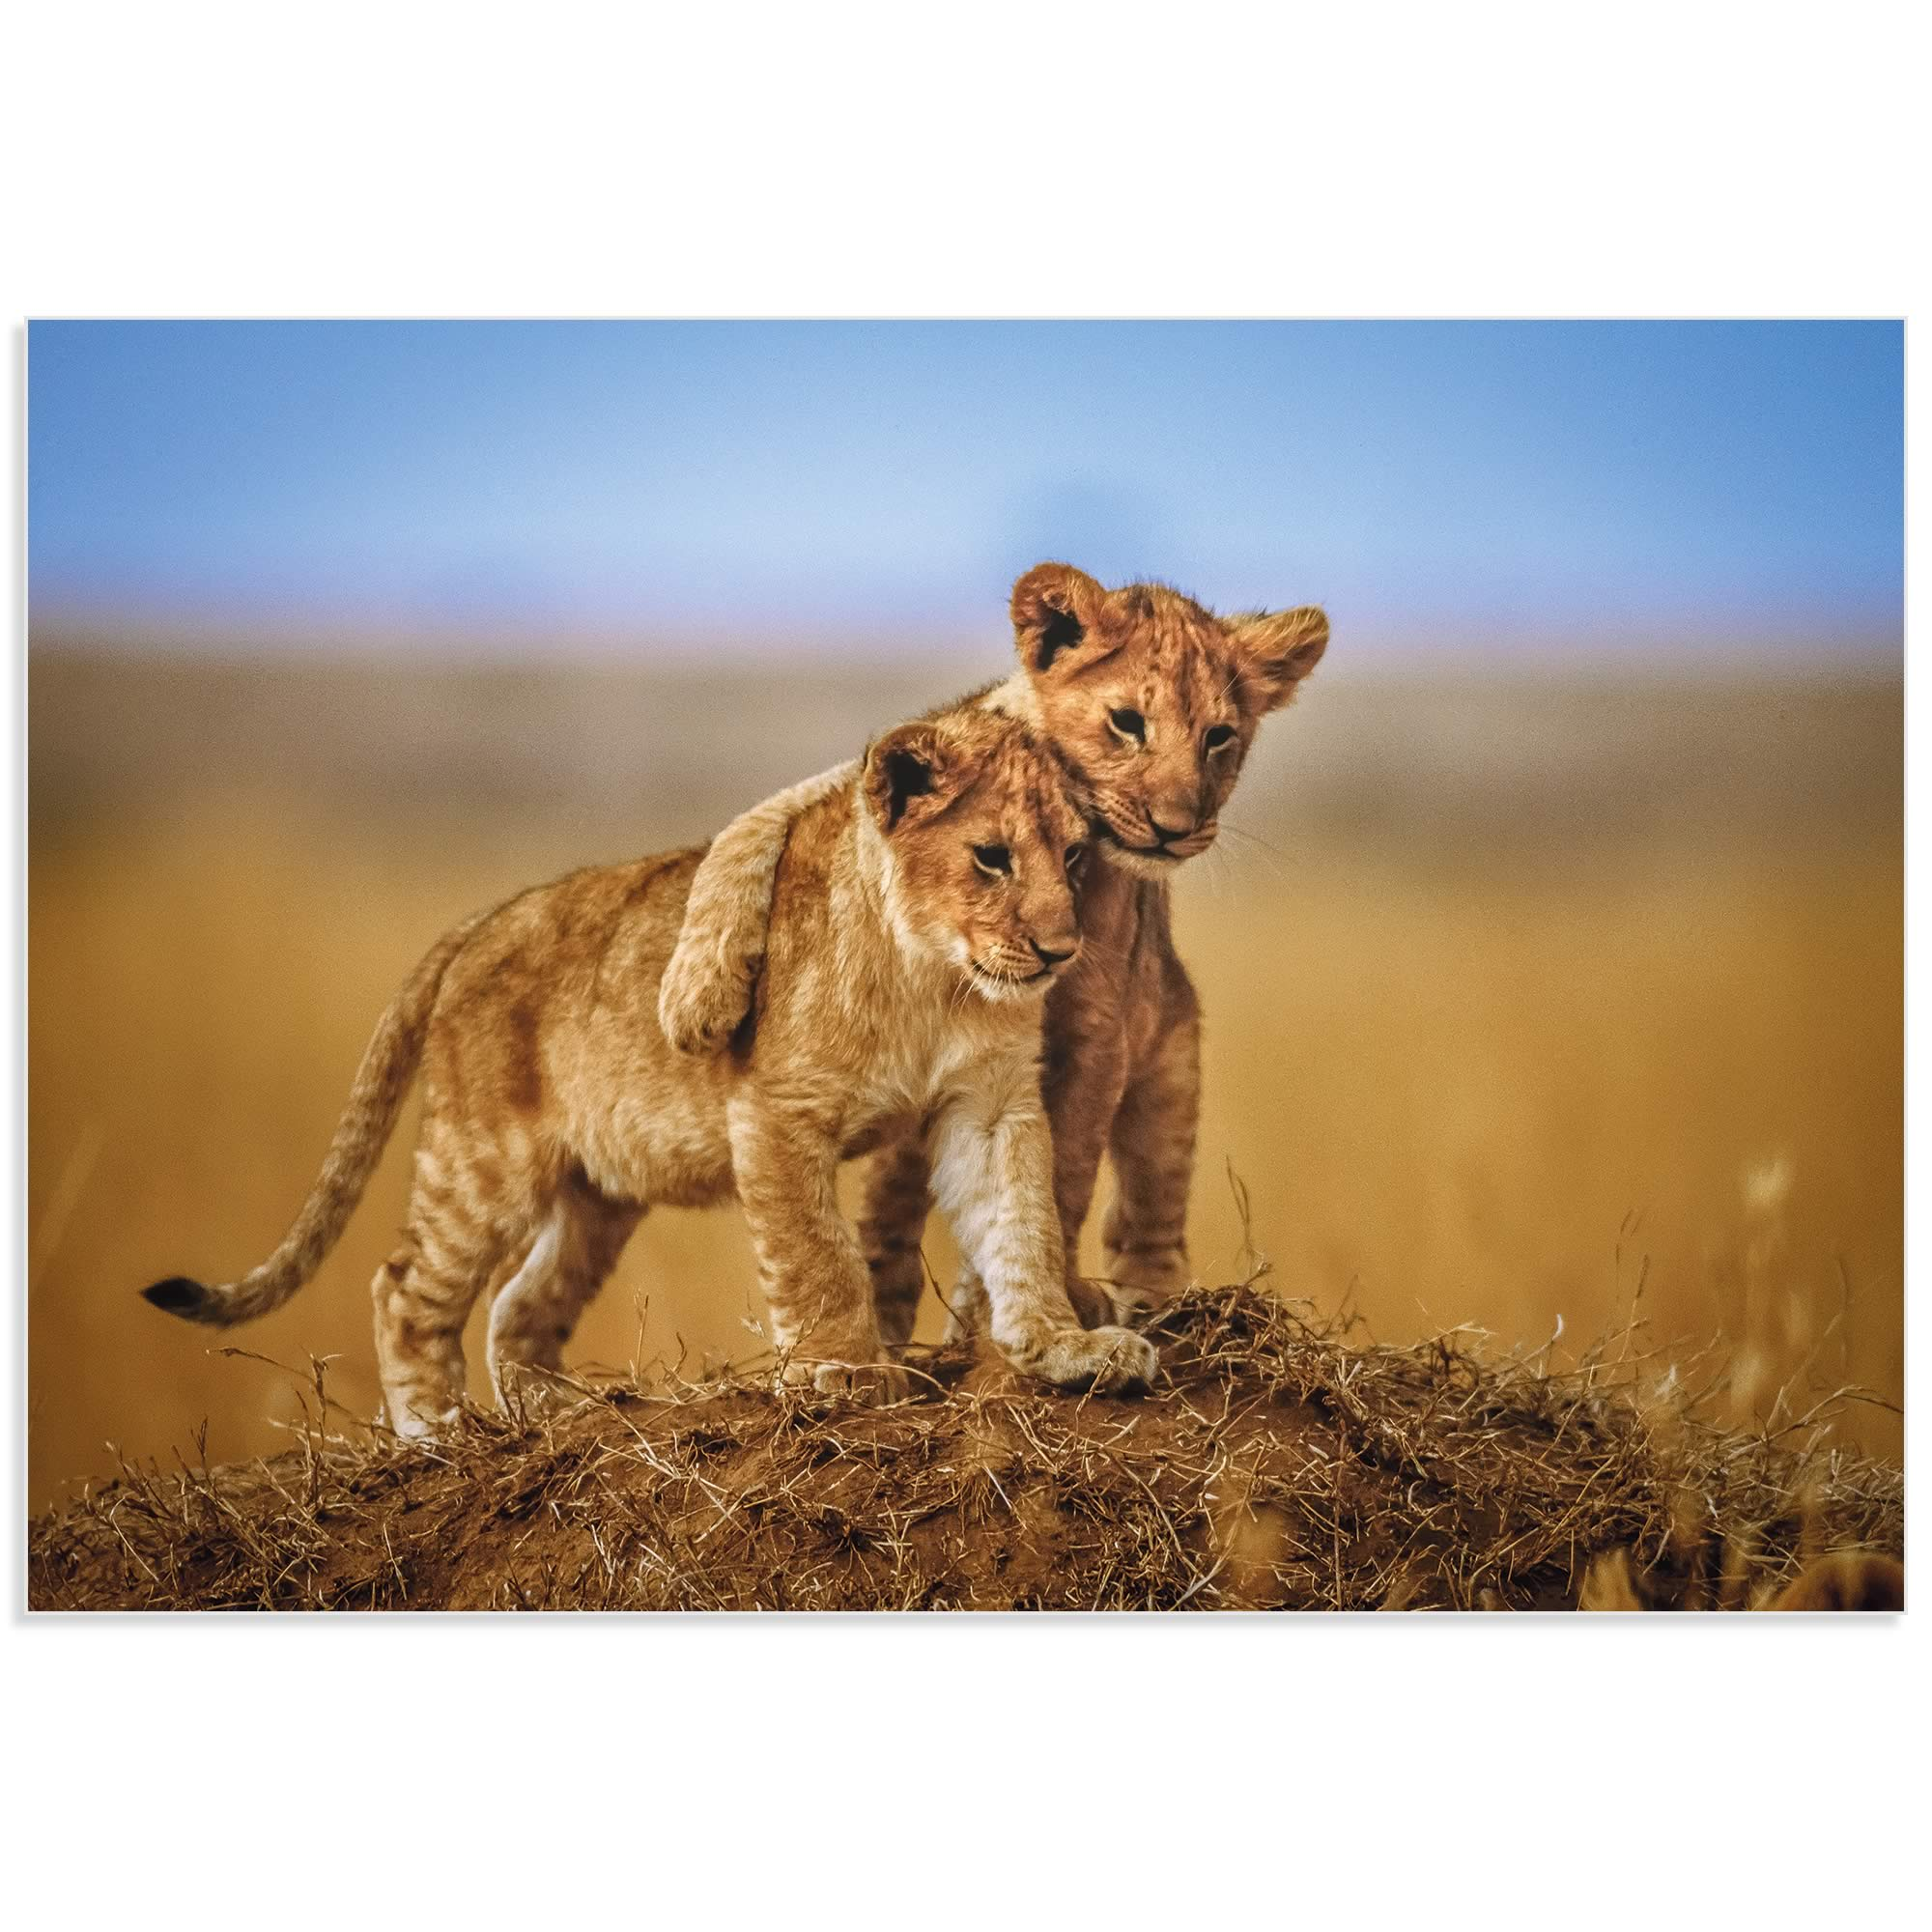 Lion Cub Brothers by Jeffrey C. Sink - Lion Cub Art on Metal or Acrylic - Alternate View 2